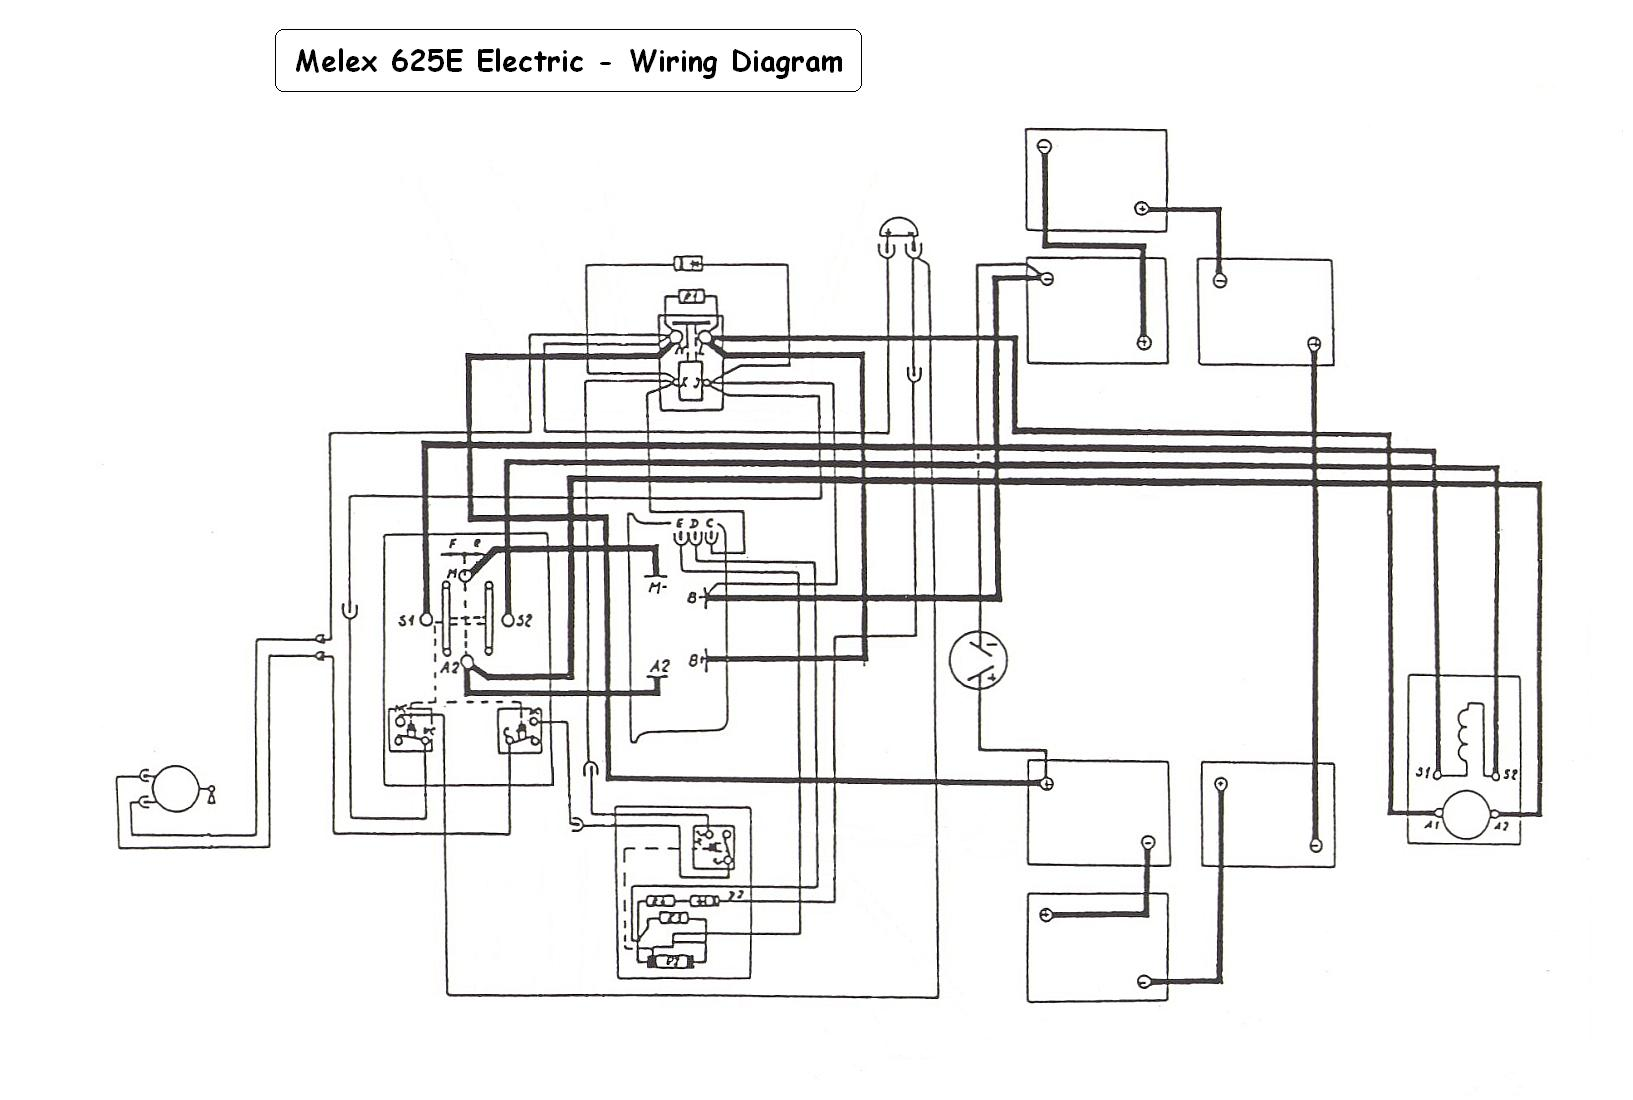 36 volt ezgo wiring diagram e 301 | doubt-champion wiring diagram -  doubt-champion.ilcasaledelbarone.it  ilcasaledelbarone.it